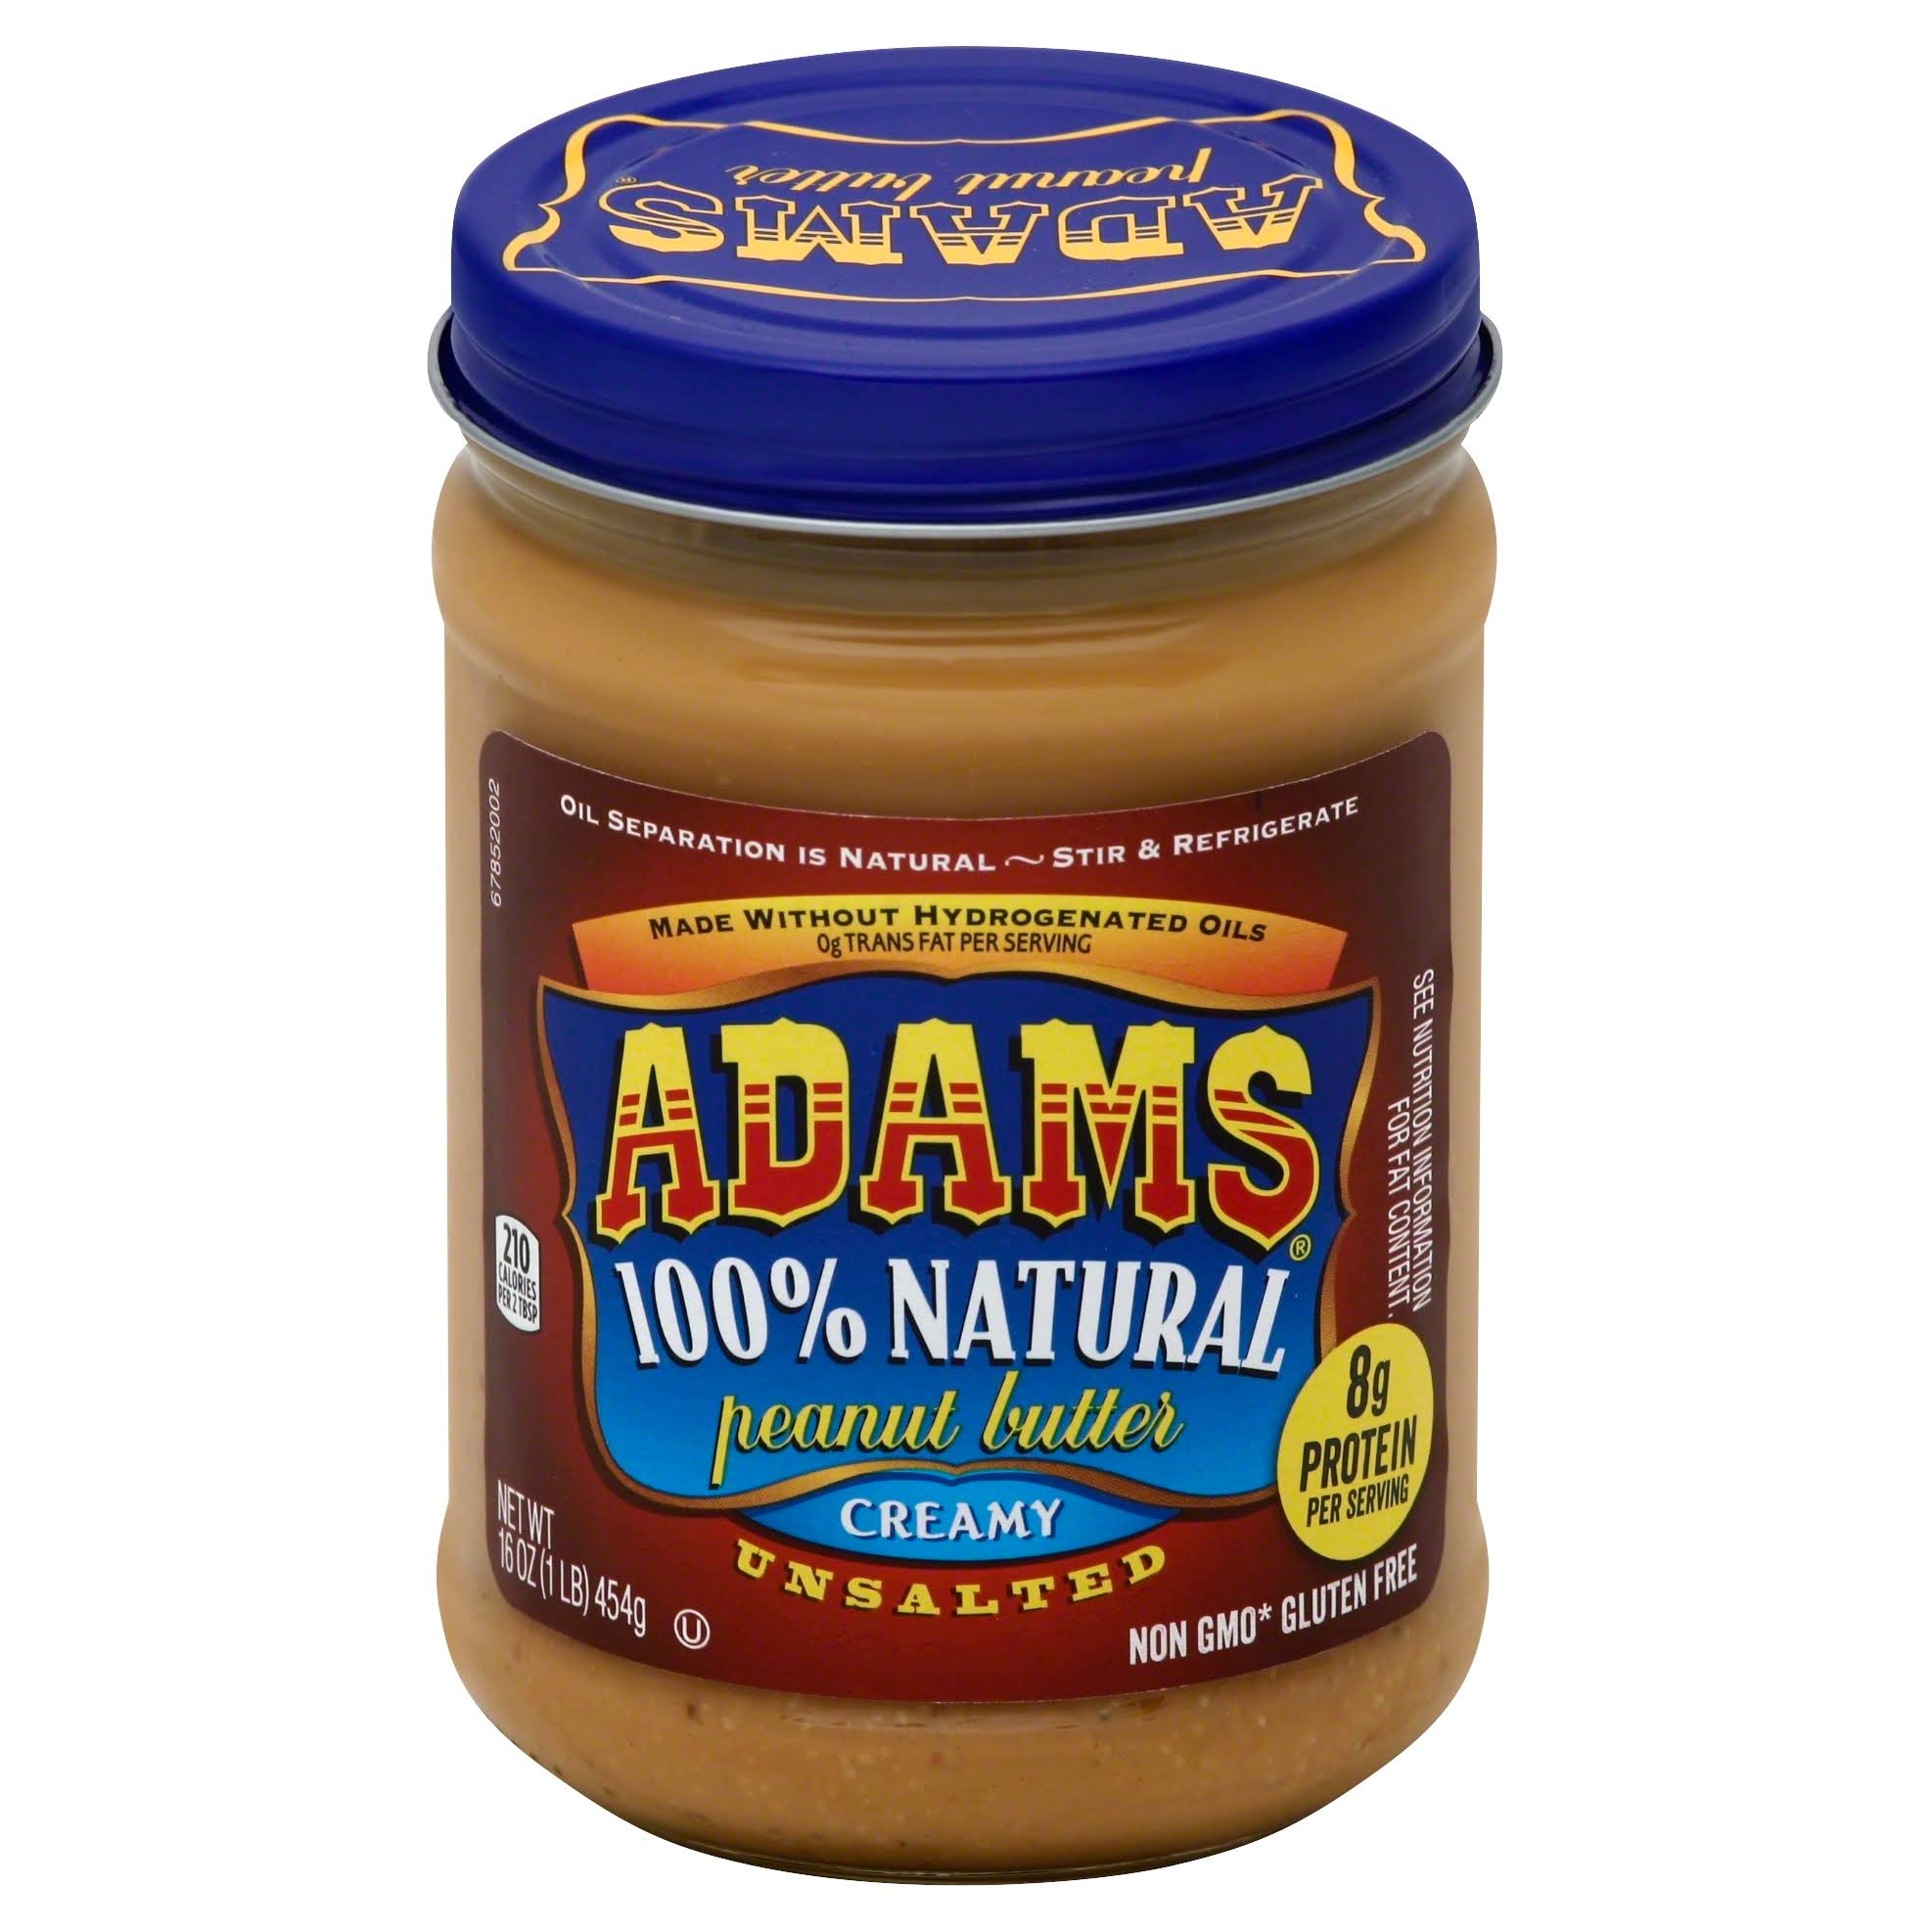 Adams Unsalted Creamy Peanut Butter - 16oz